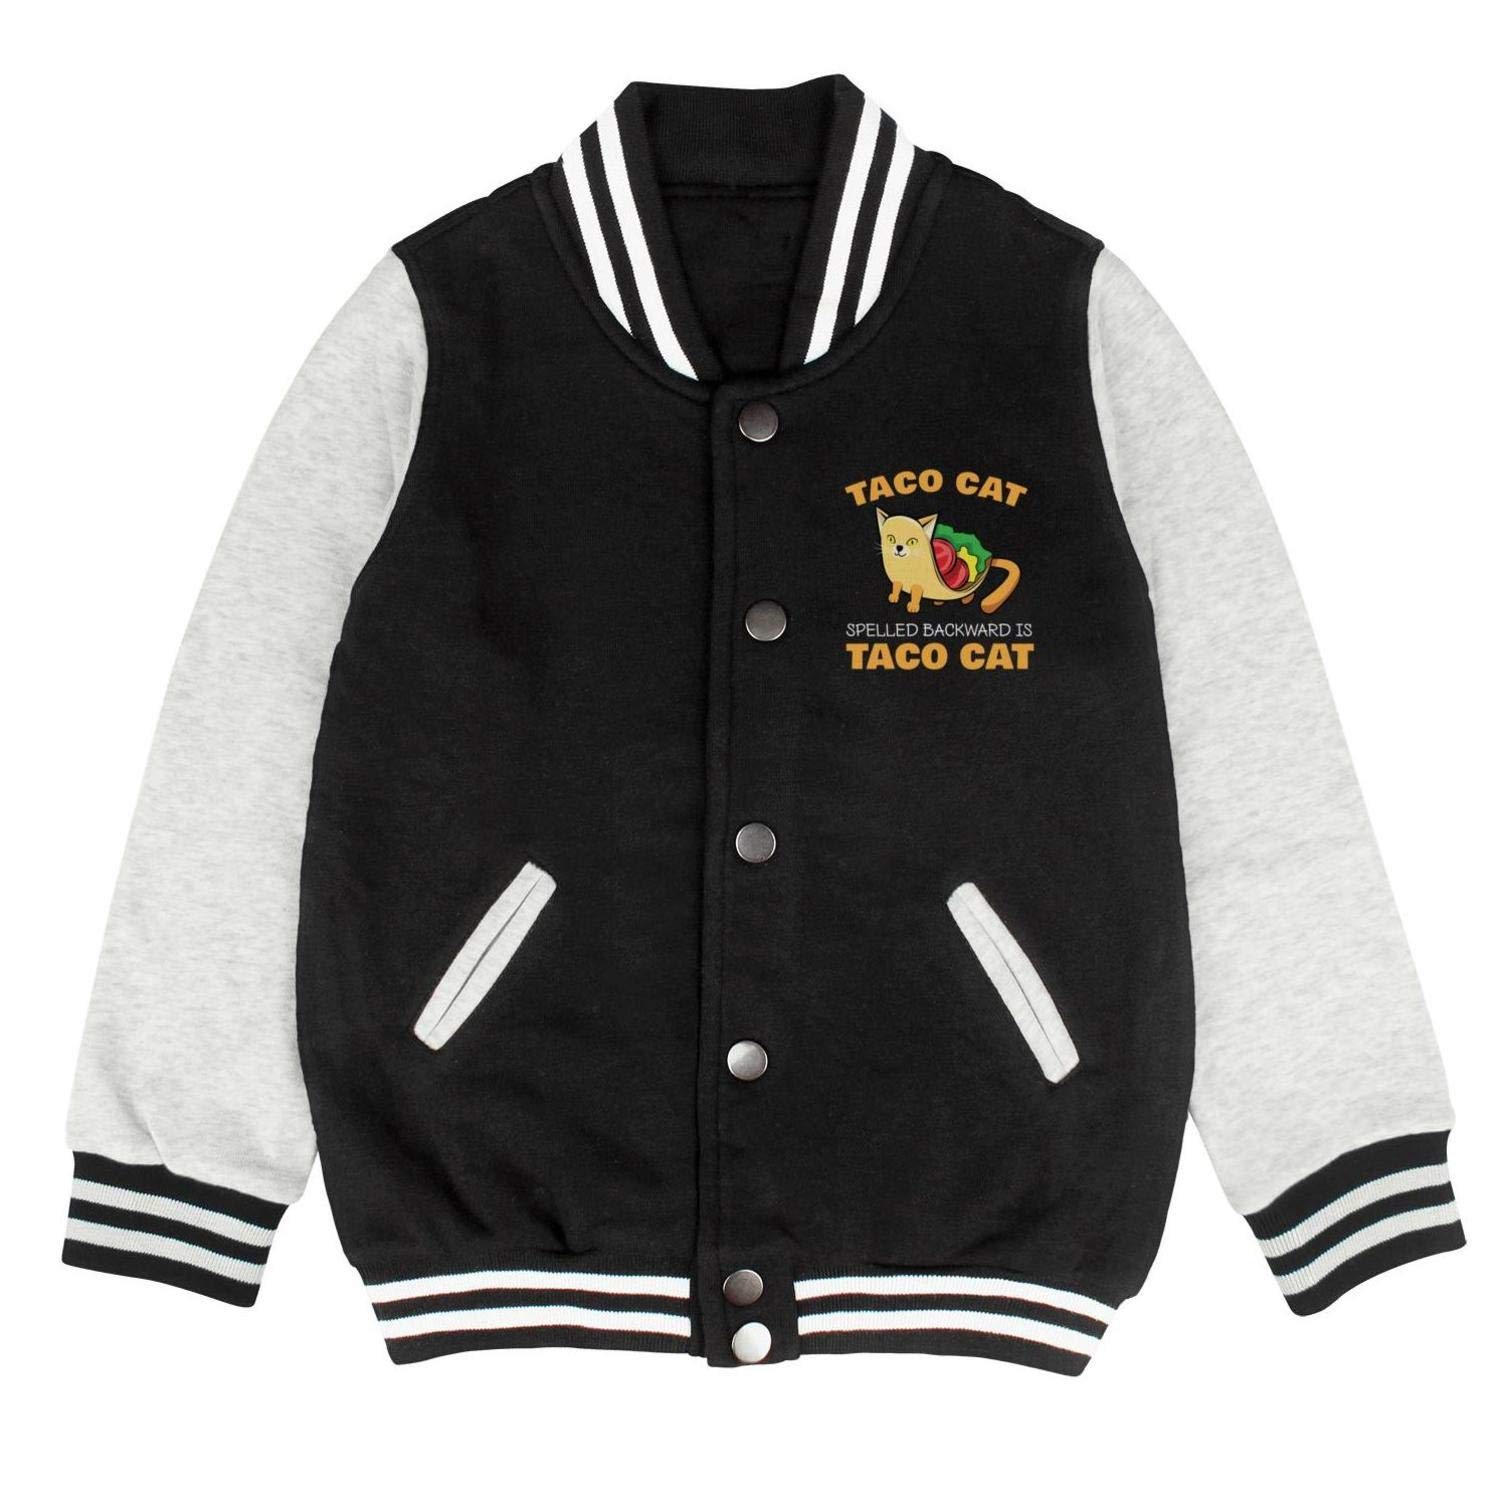 Taco Cat Spelled Backwards is Taco Cat Funny Taco Baseball Pullovers Unisex Cool Outerwear Jackets for Kids